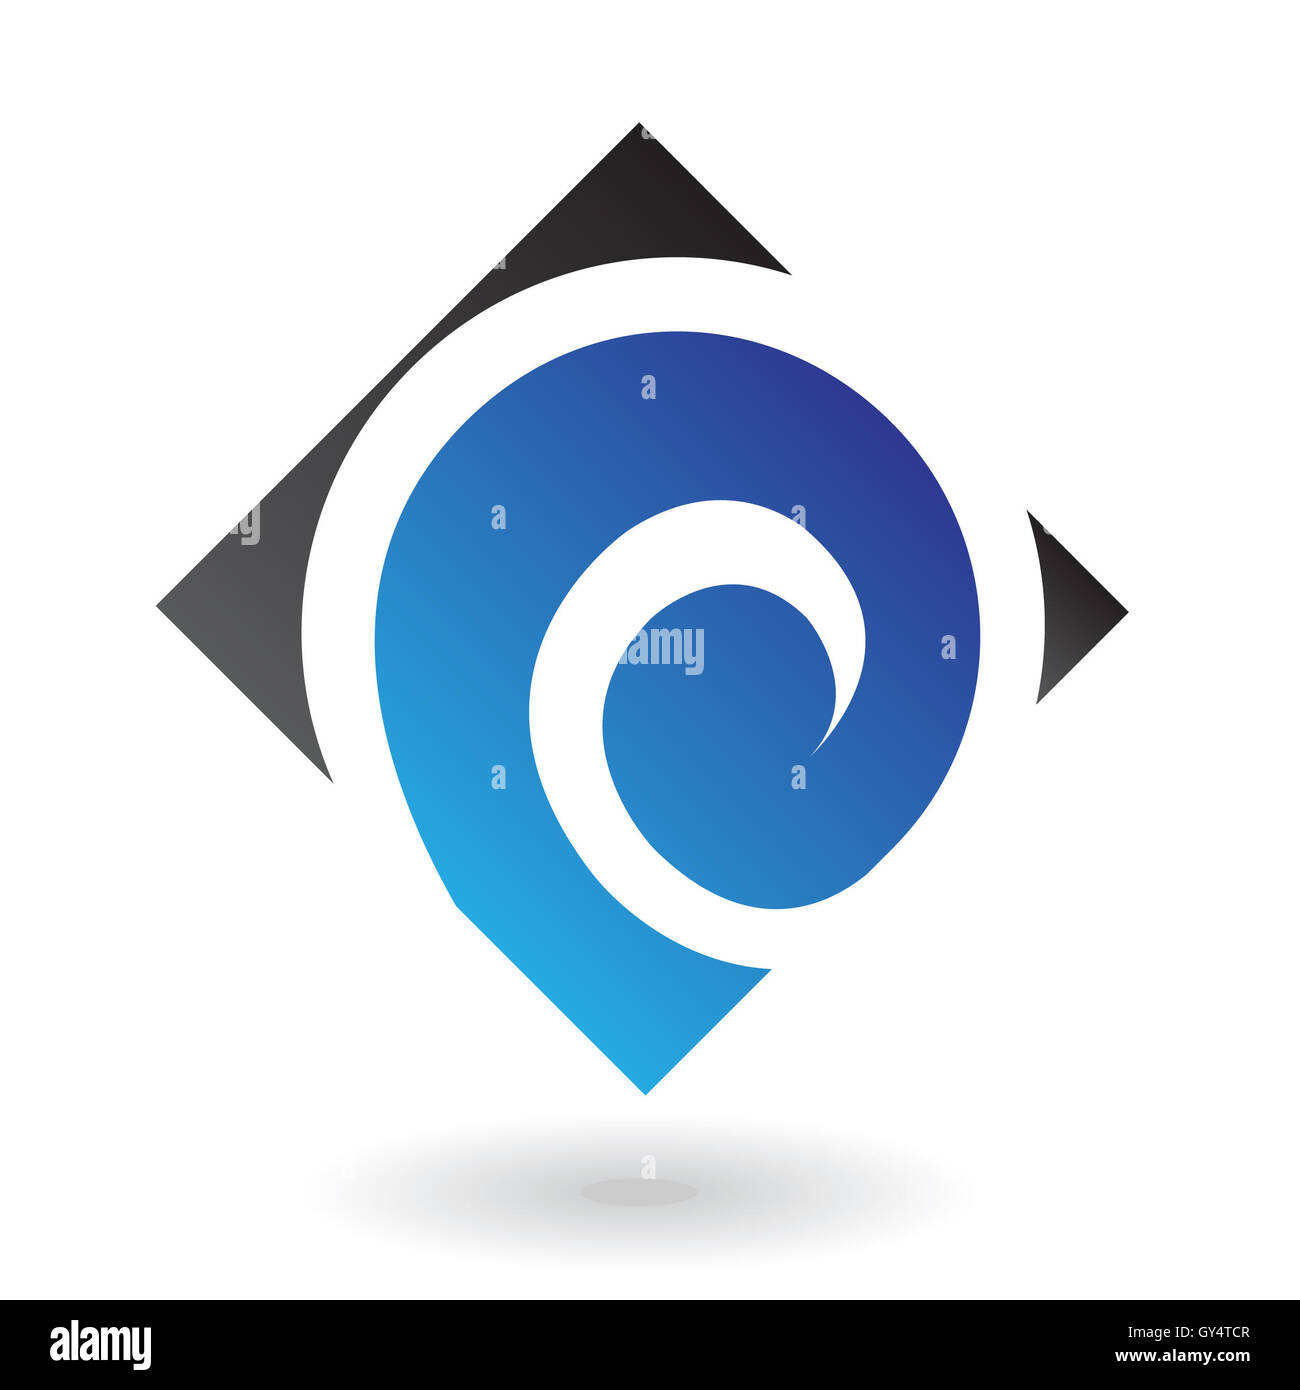 Blue and black logo icon and graphic design element - Stock Image